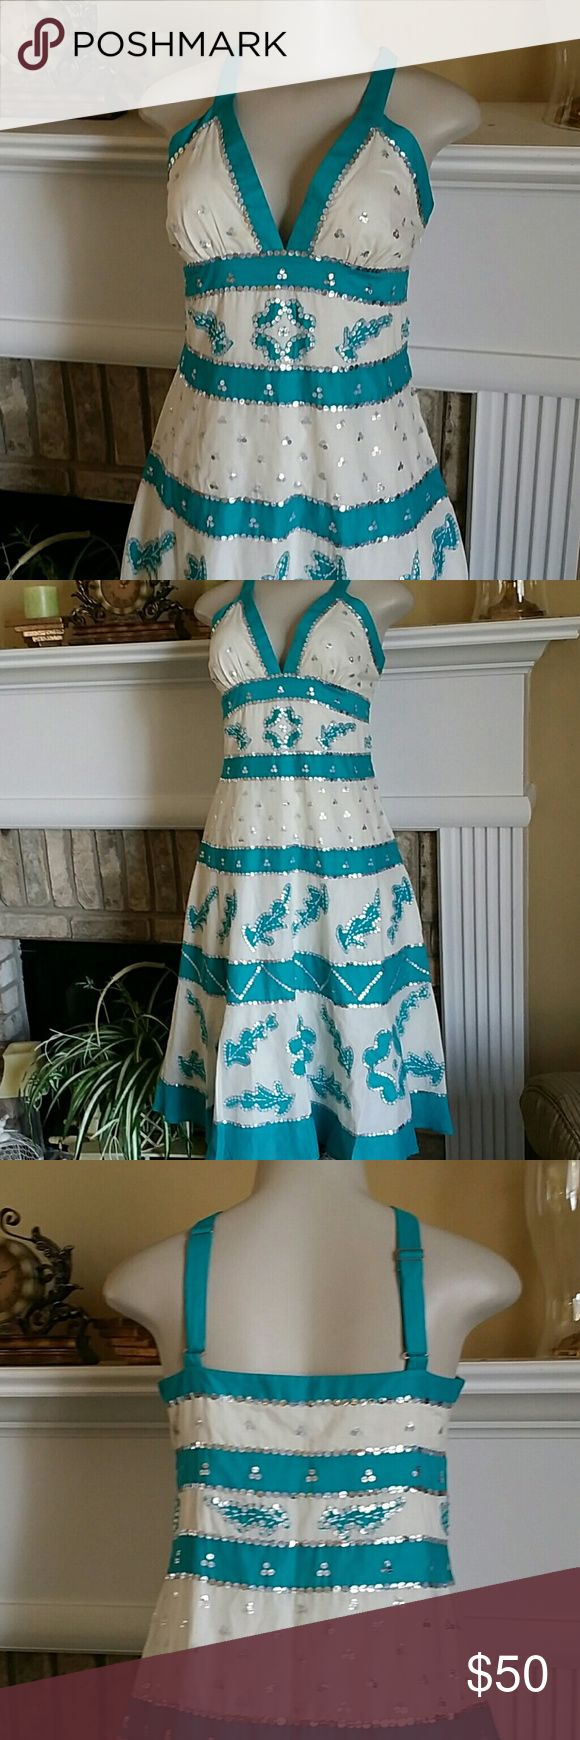 BEAUTIFUL BCBG MAXAZRIA DRESS Teal blue and white with sequin details.  Fully lined.  Adjustable  straps. Perfect for spring/summer. Gently used.  Tiny yellow stain hardly  noticeable  as shown on last picture. BCBGMaxAzria Dresses